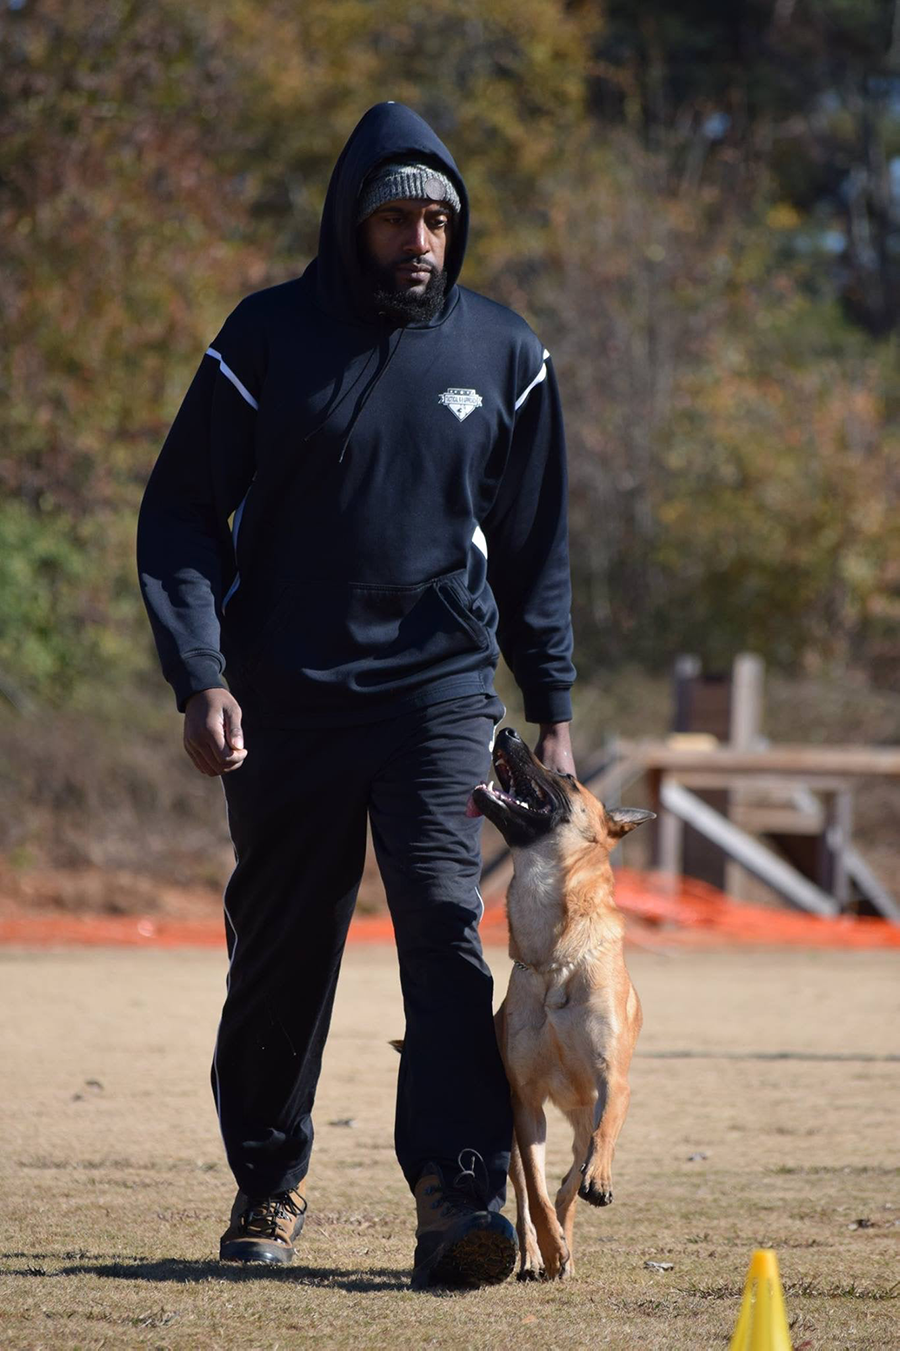 Terry Adams, owner of Tactical K9, walking with a dog during a training session outside.